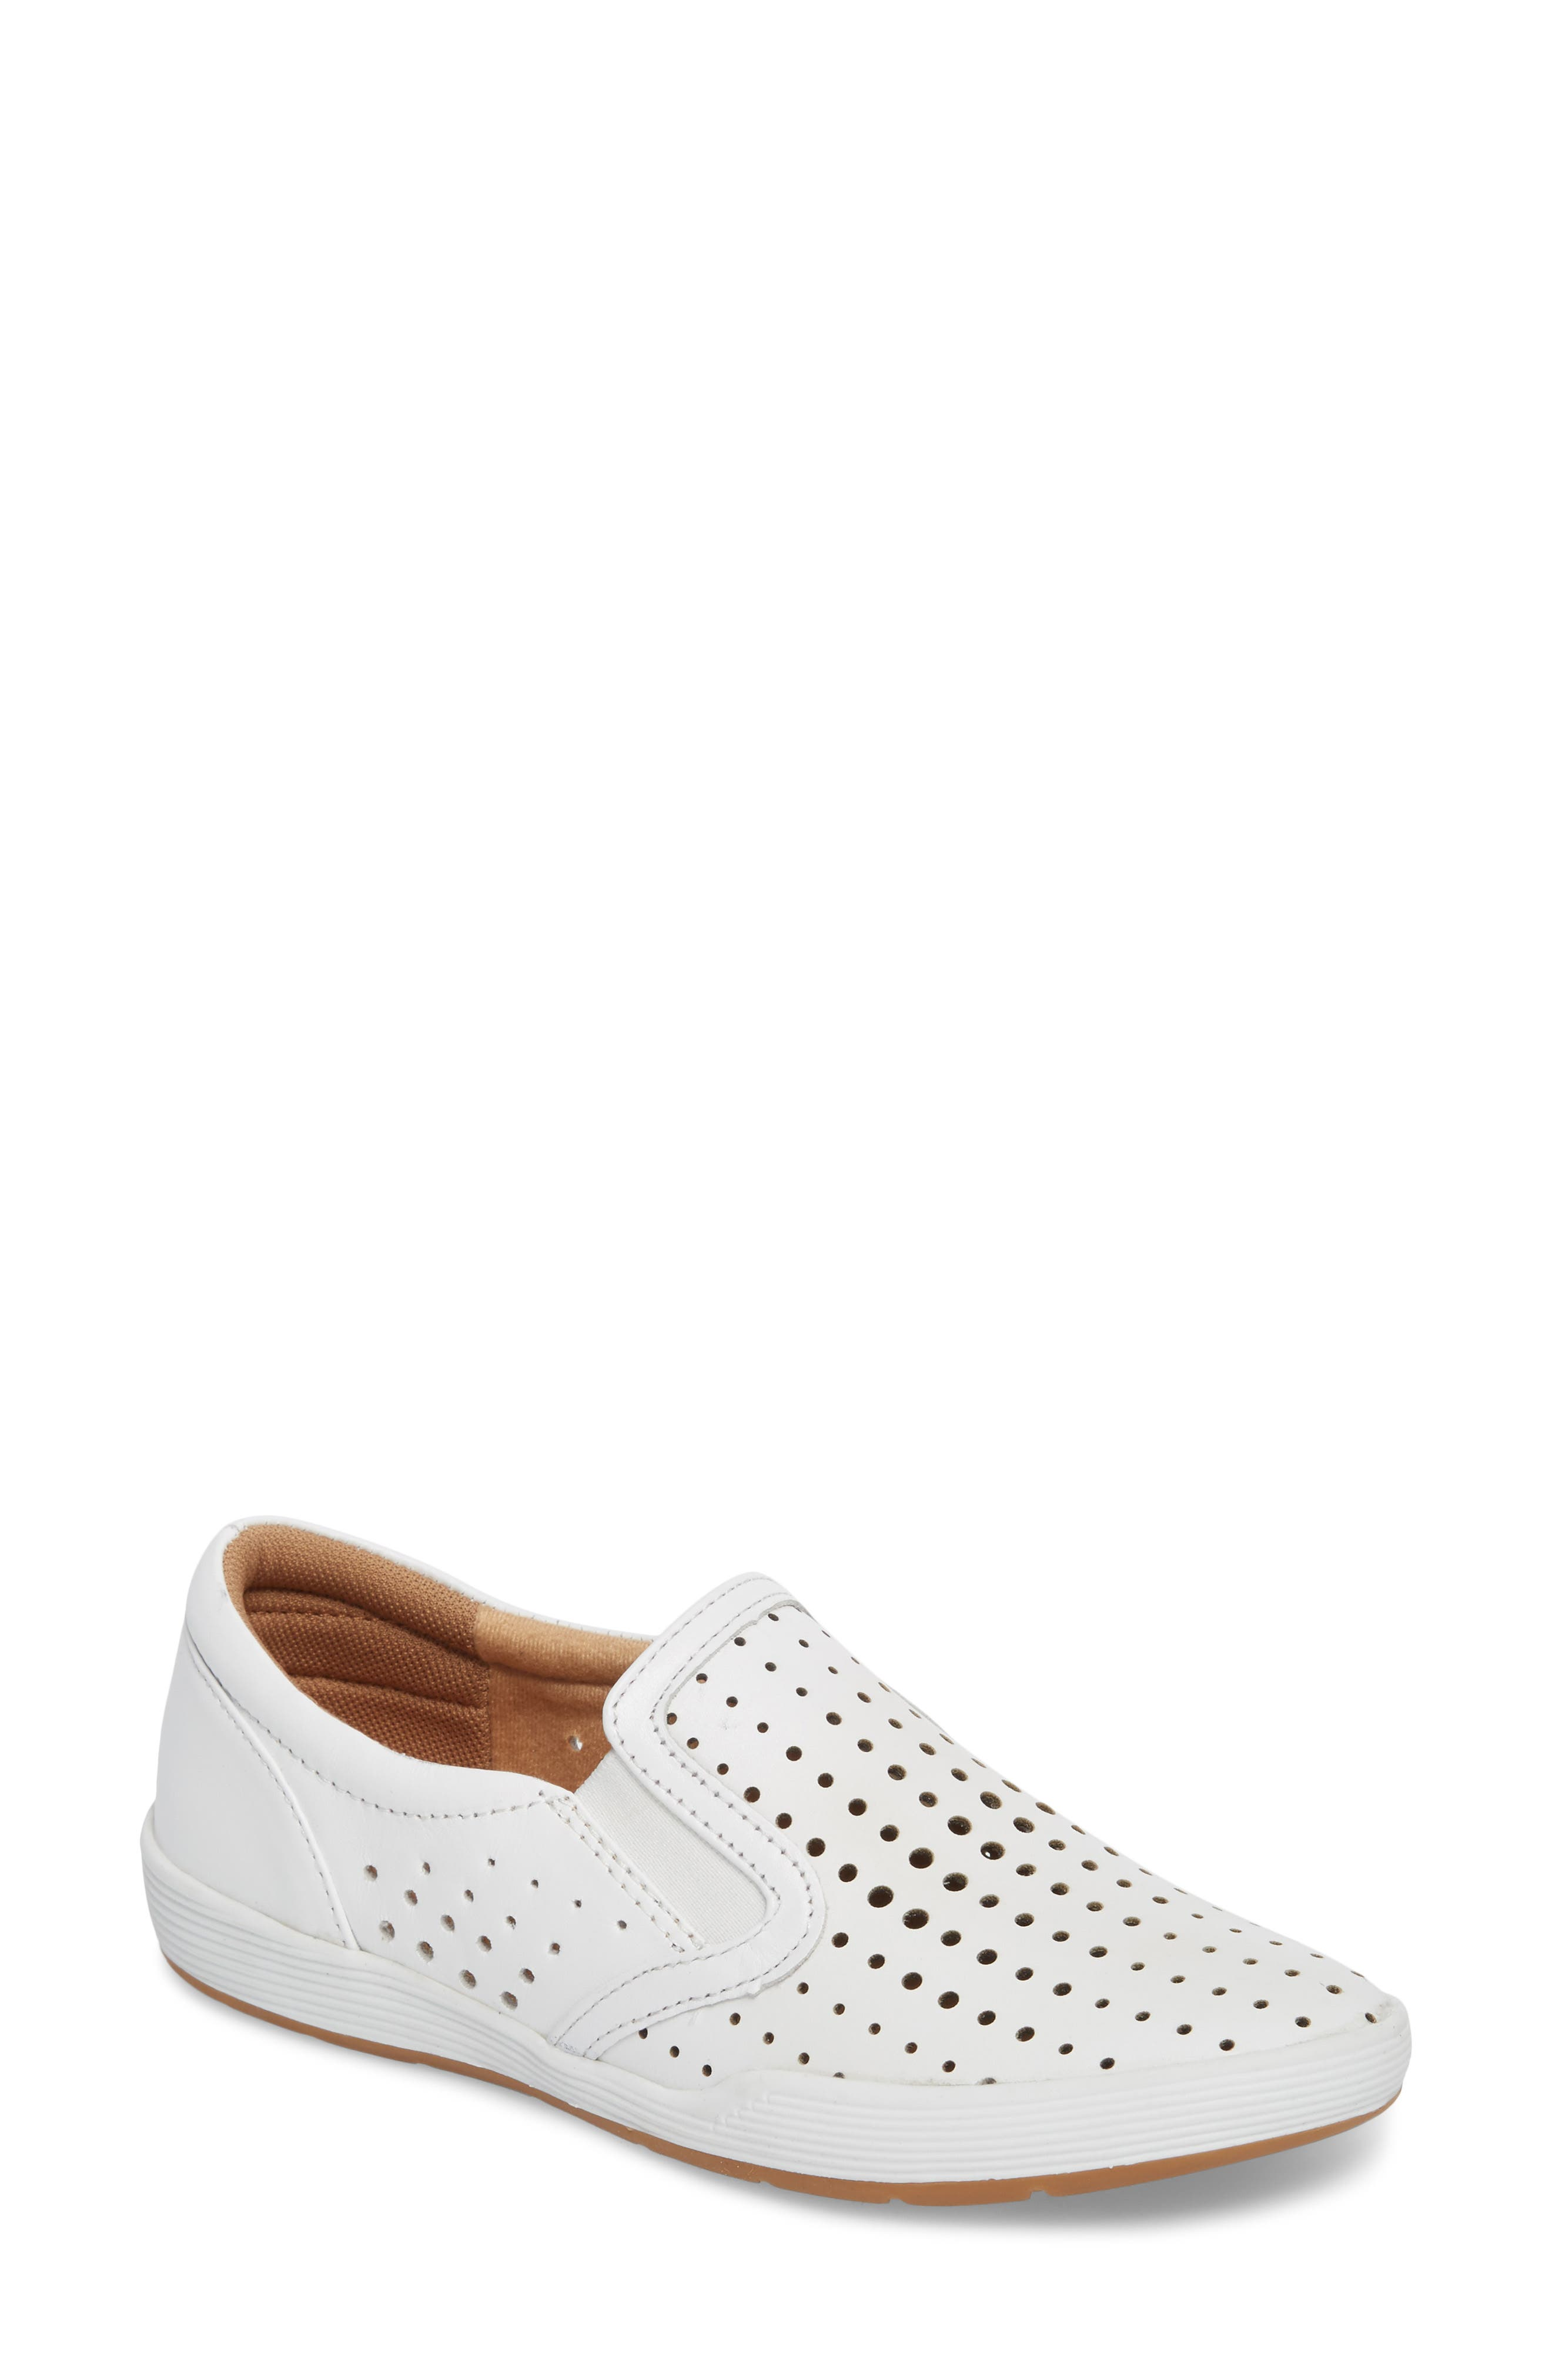 COMFORTIVA Lyra Perforated Slip-On Sneaker, Main, color, WHITE LEATHER